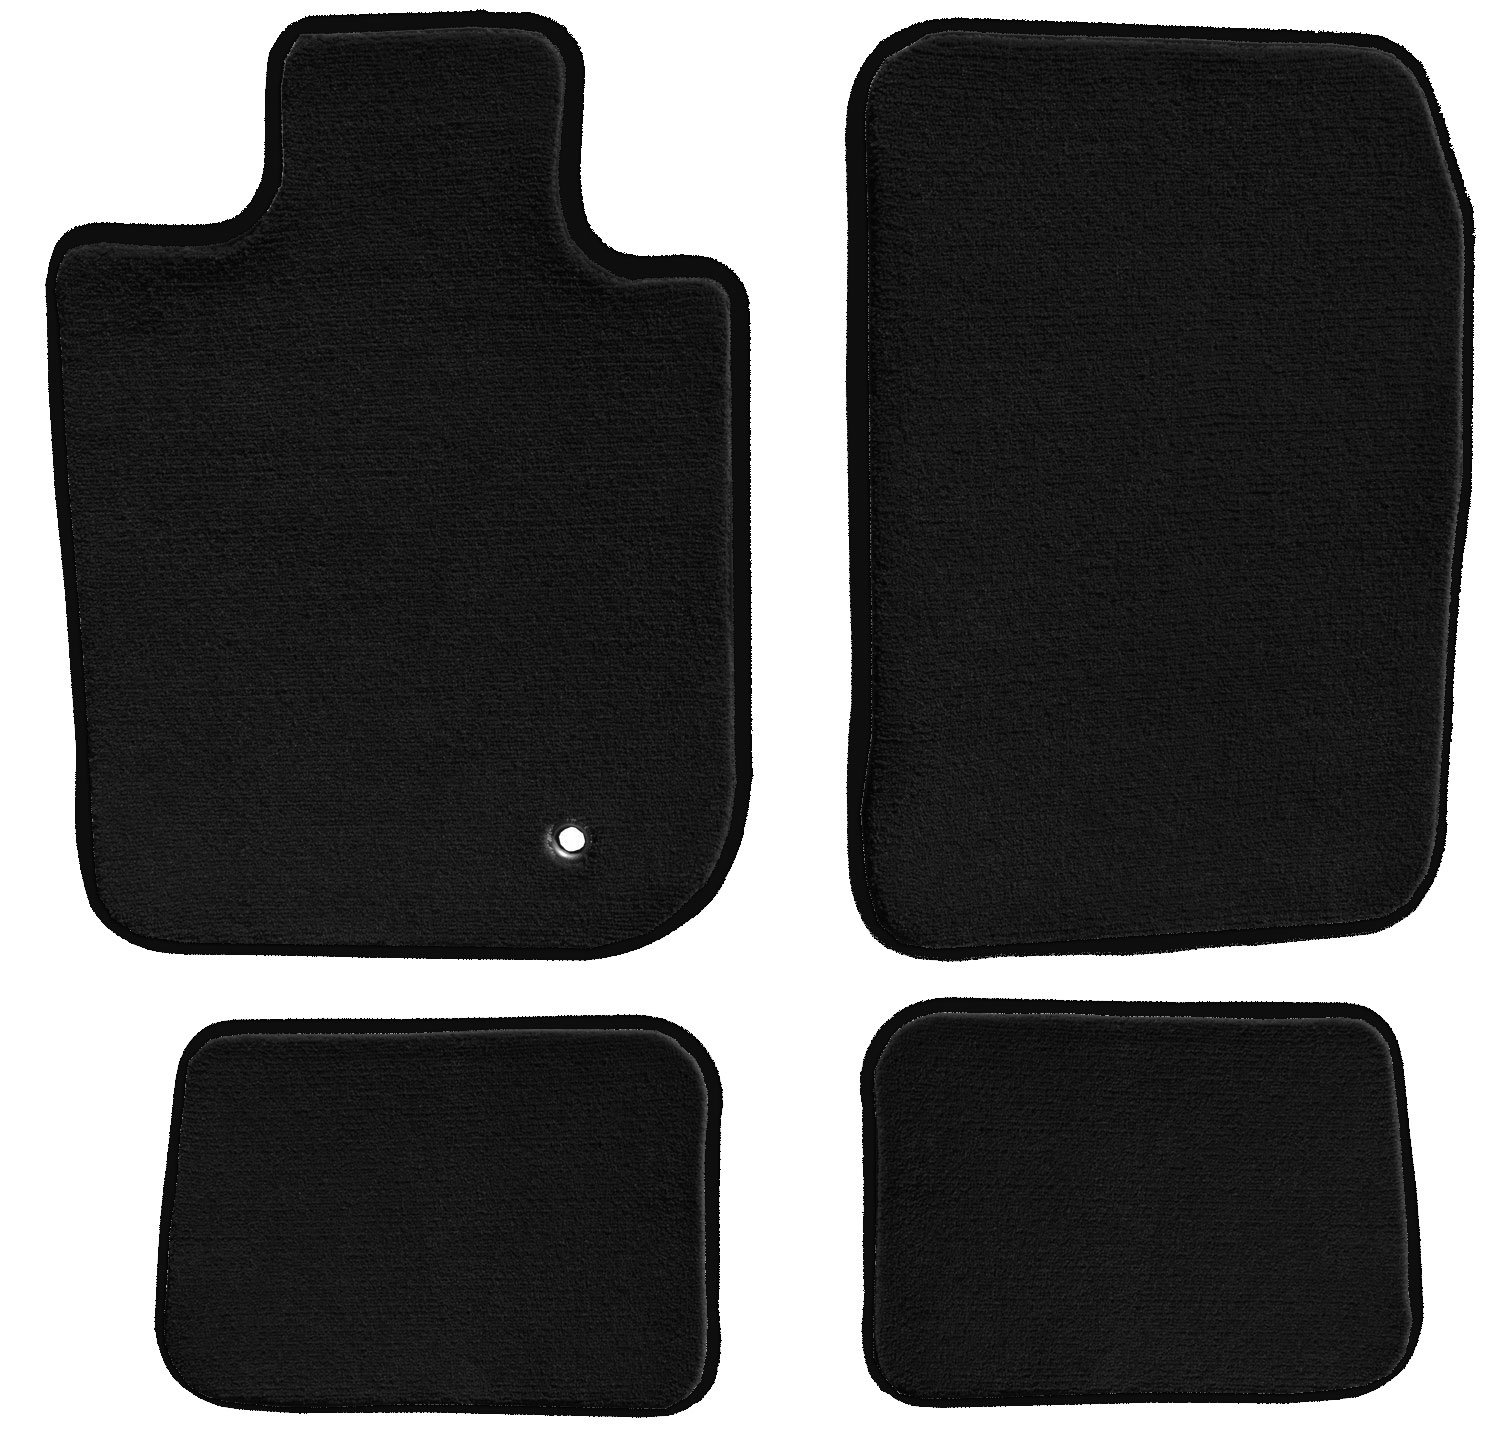 GGBAILEY D3977A-S1A-BK-LP Custom Fit Automotive Carpet Floor Mats for 1990 1996 1992 1997 Volkswagen Passat Sedan Black Loop Driver 1993 1994 Passenger /& Rear 1991 1995